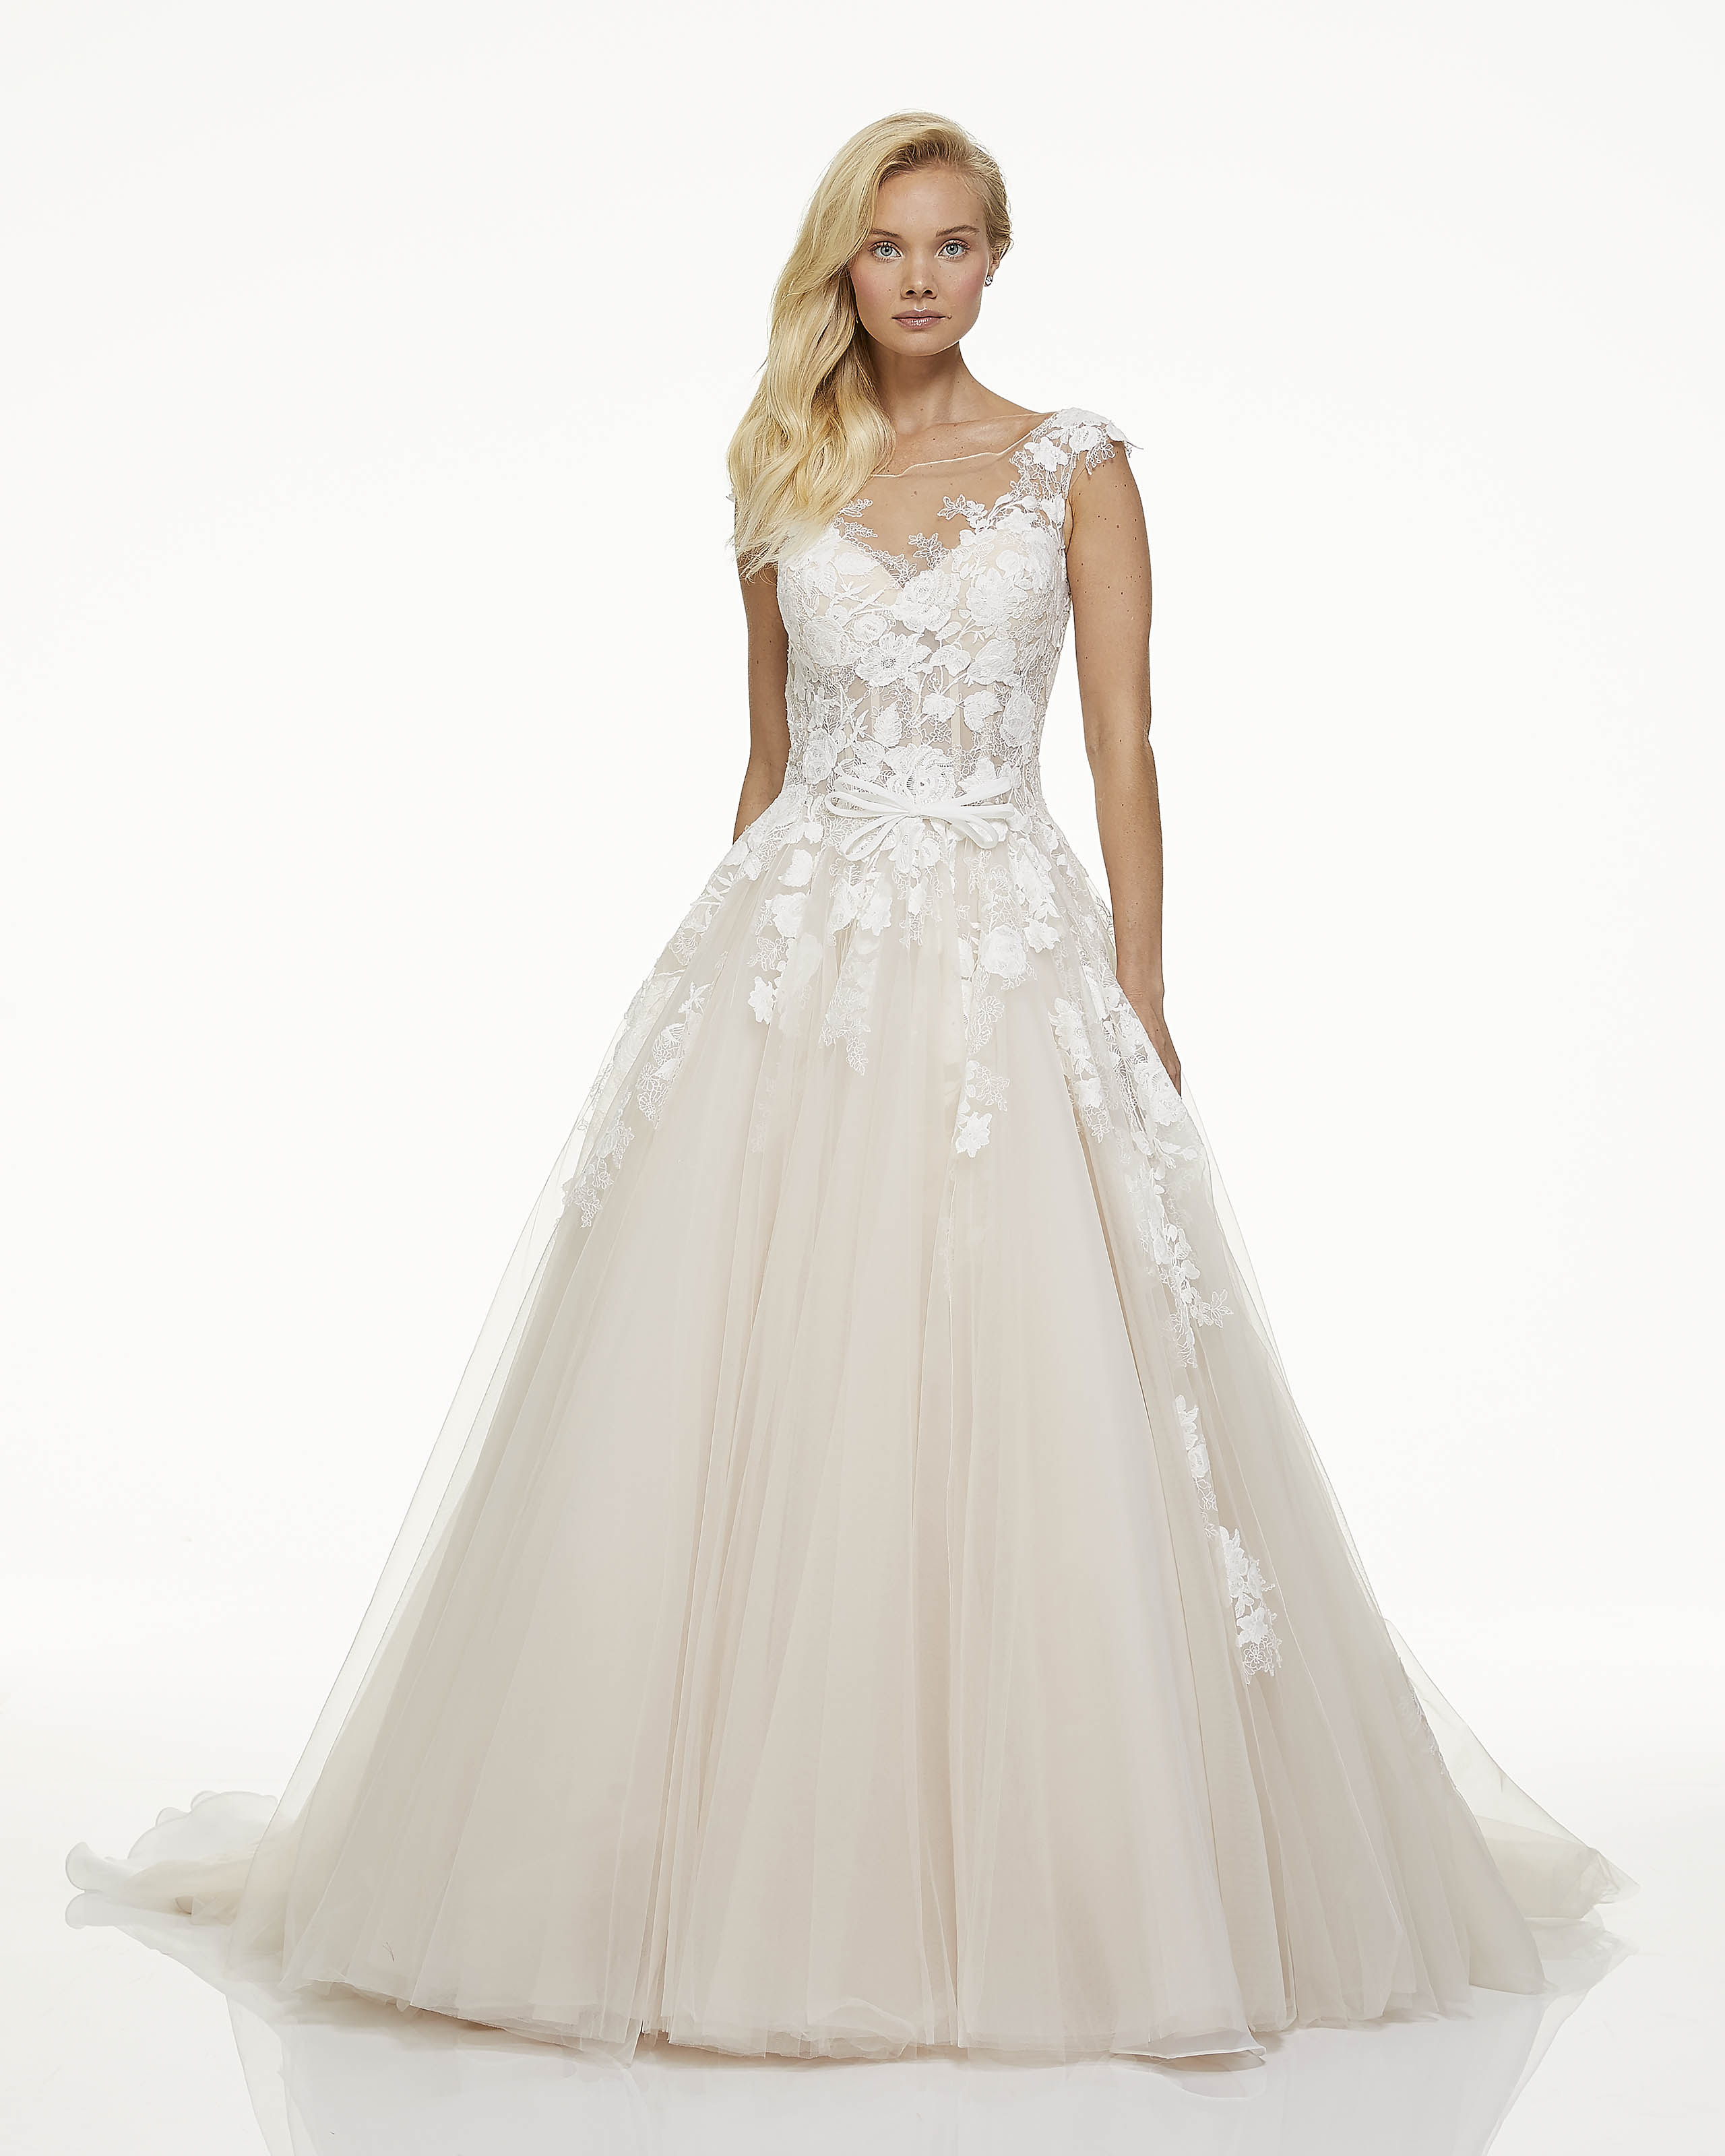 mark zunino fall 2019 ball gown illusion high neckline sleeveless sheer floral applique